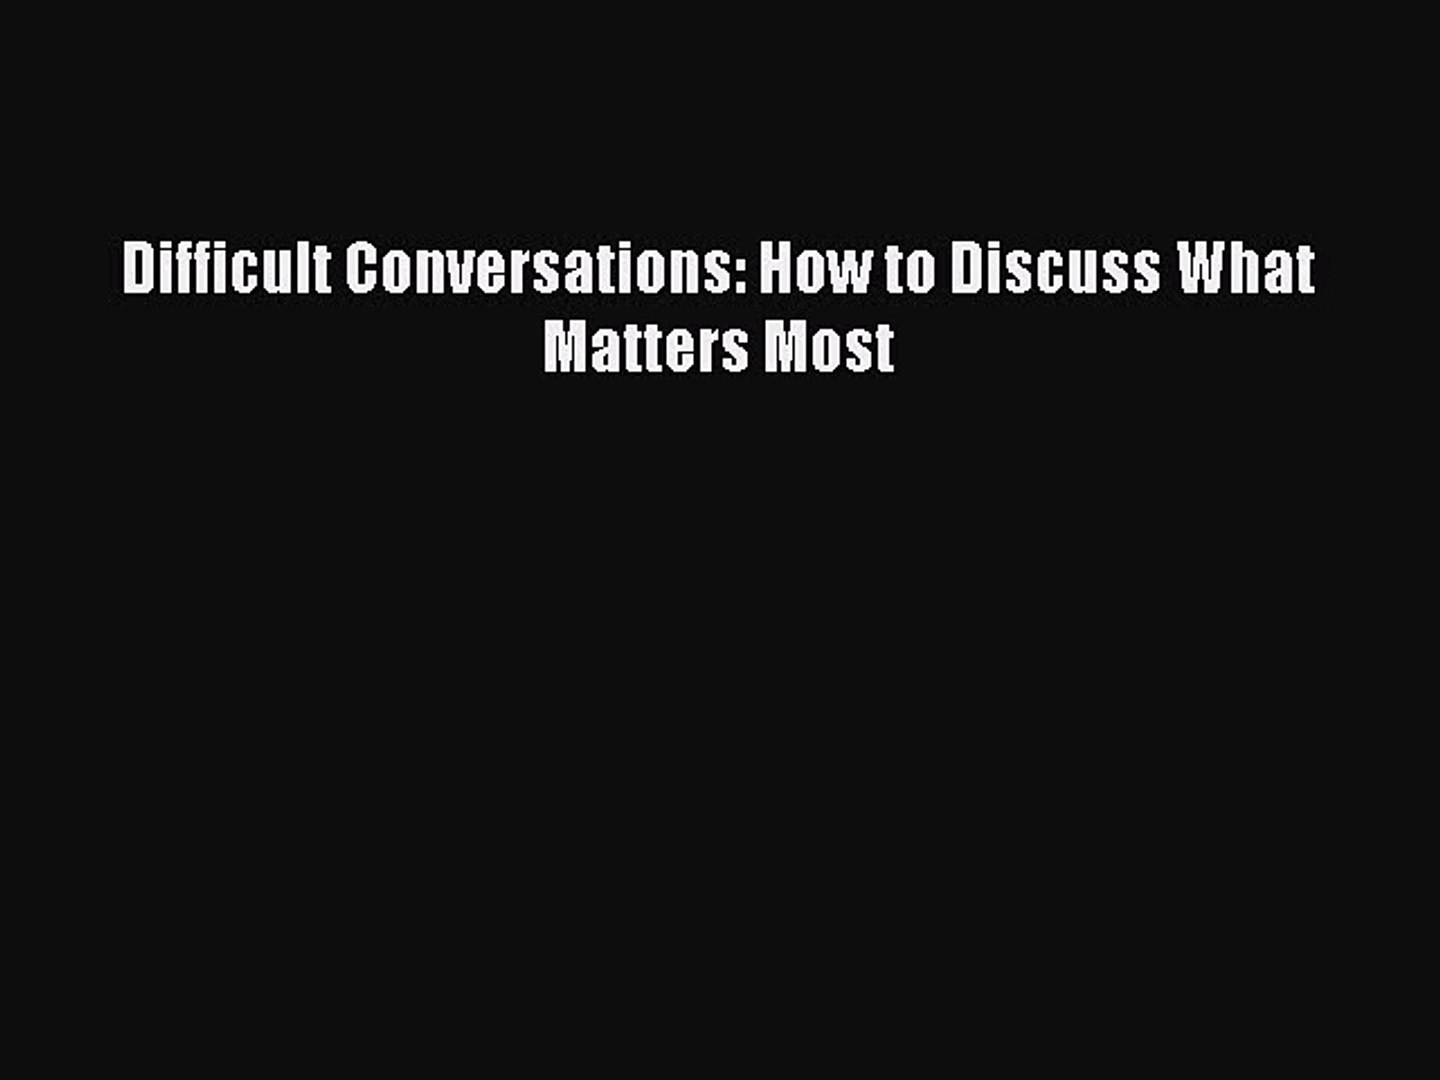 Pdf Download Difficult Conversations How To Discuss What Matters Most Pdf Full Ebook Video Dailymotion